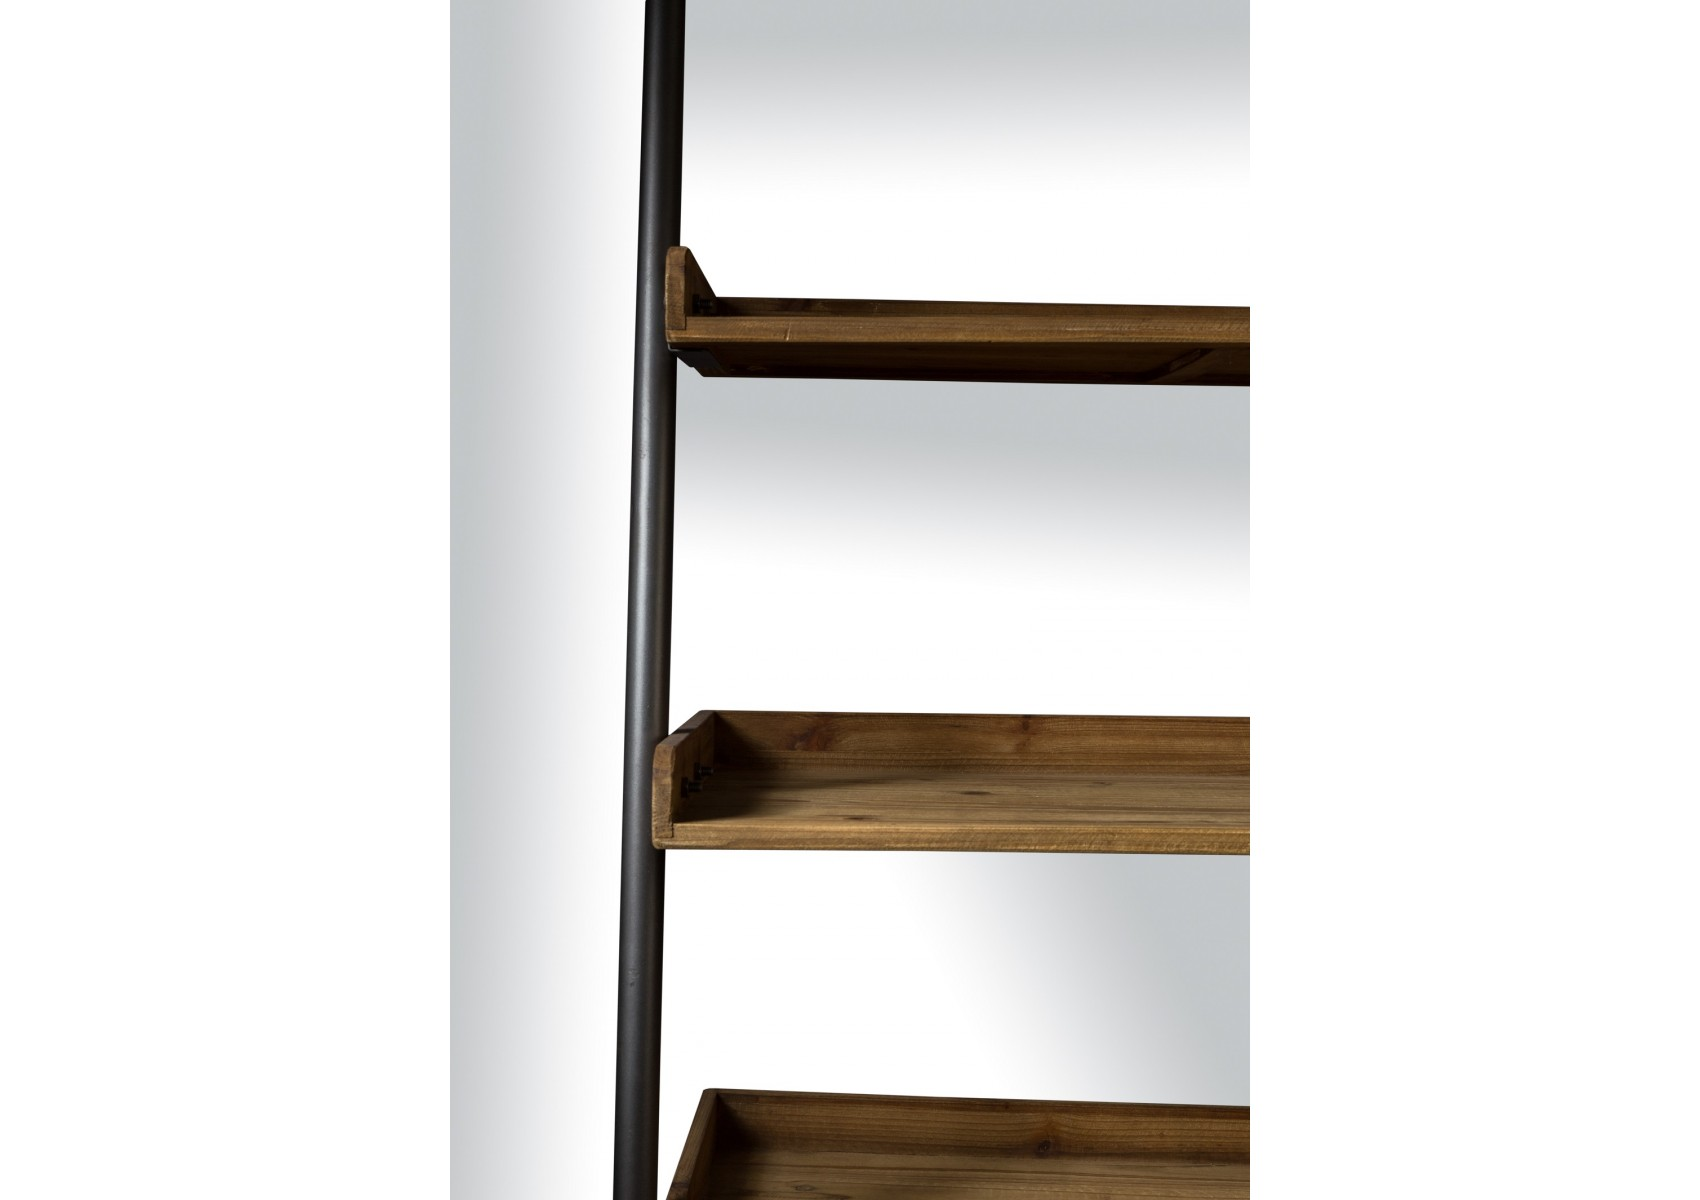 etag re en bois et m tal shelf wally de chez boite design. Black Bedroom Furniture Sets. Home Design Ideas